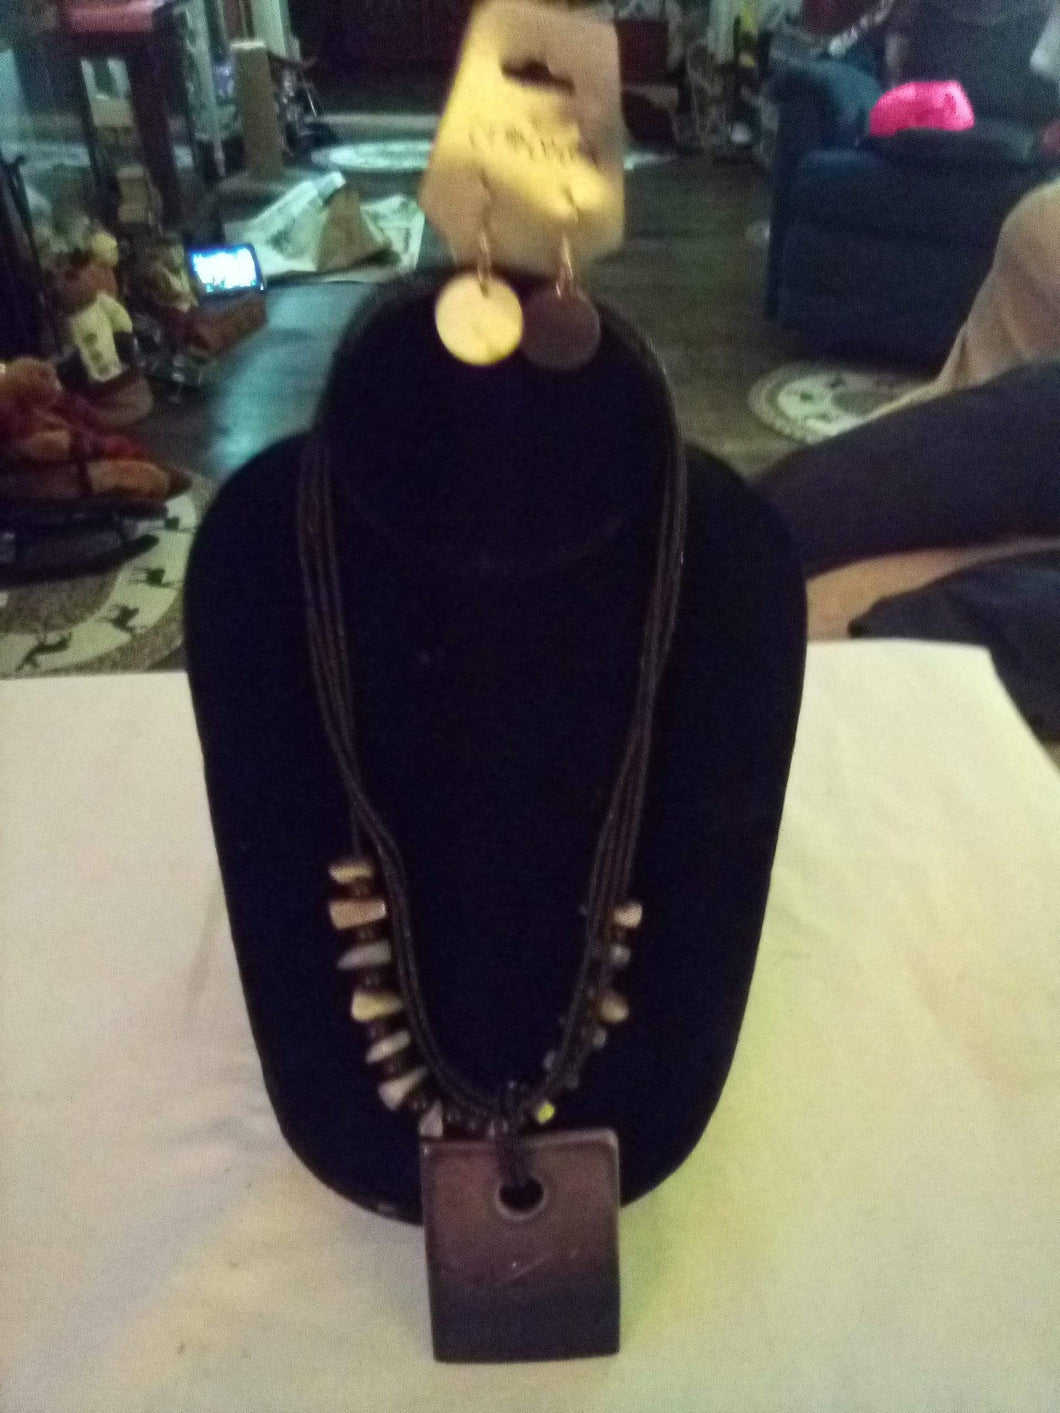 Dressy necklace with matching pierced earrings - B&P'sringsnthings